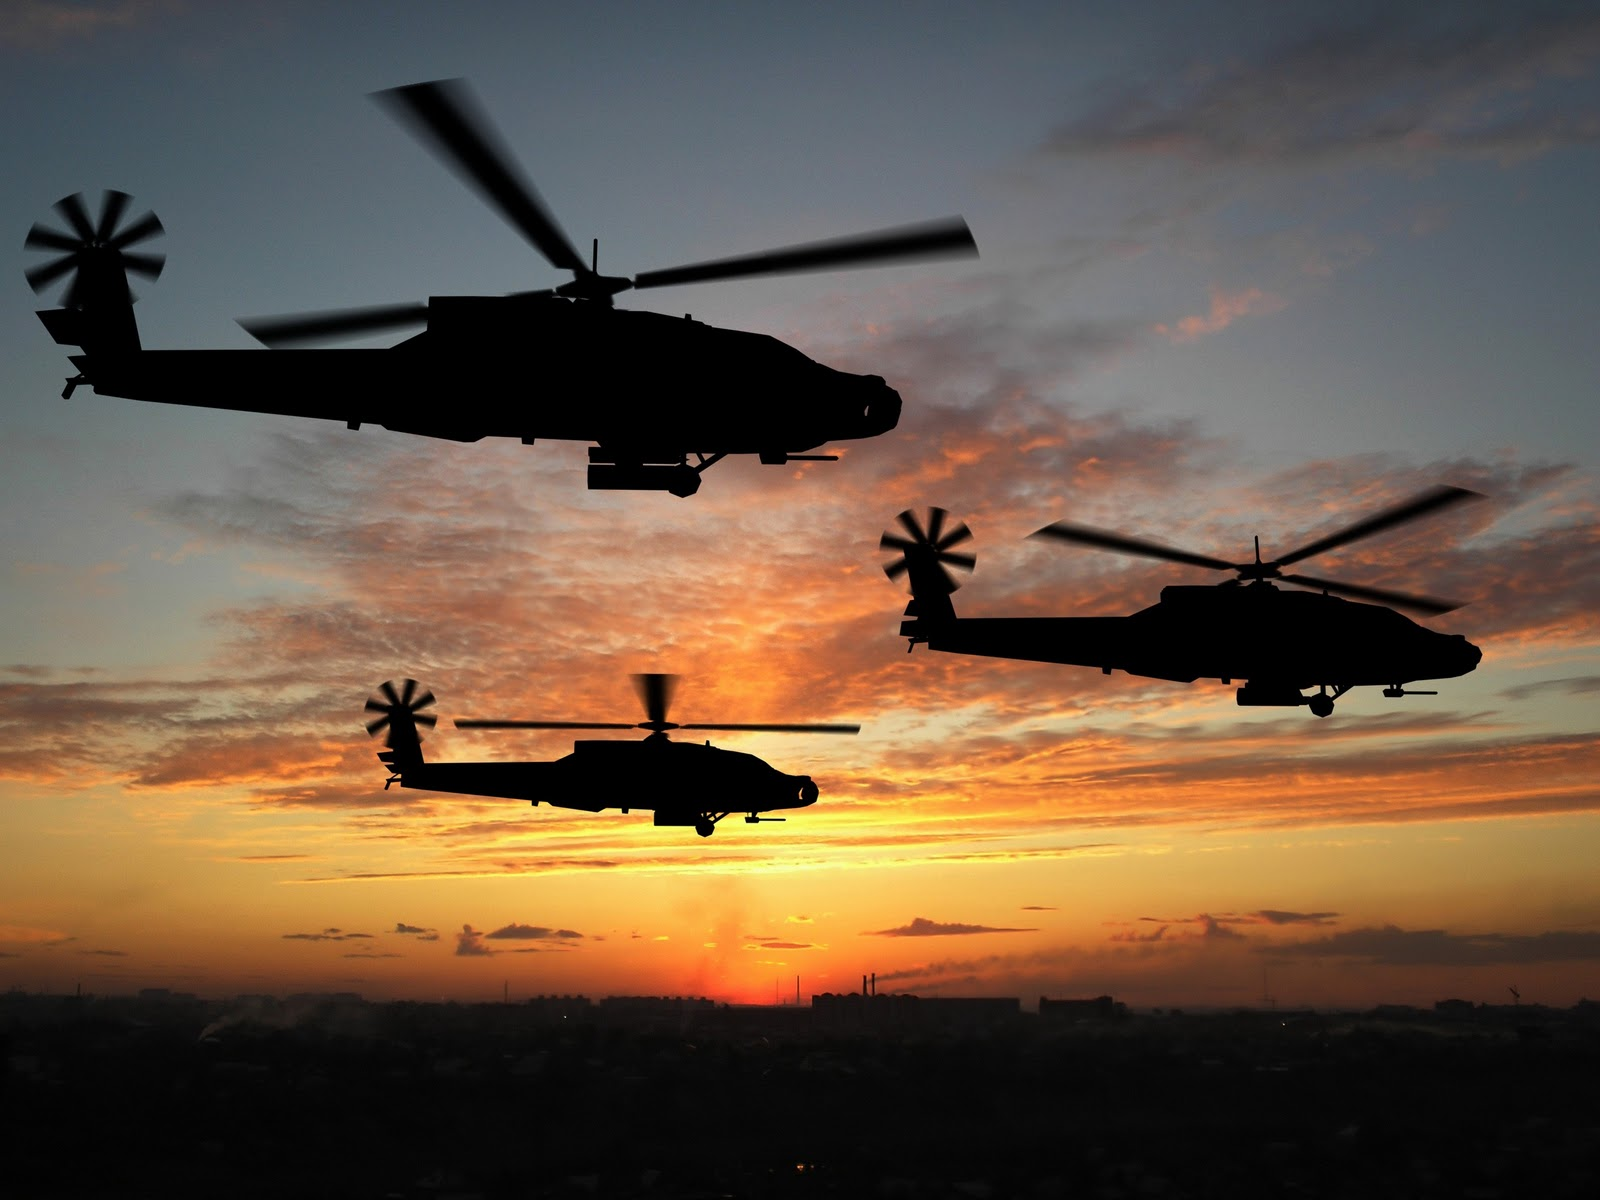 Apache Helicopters Sunset HD Wallpapers Download Wallpapers in HD 1600x1200